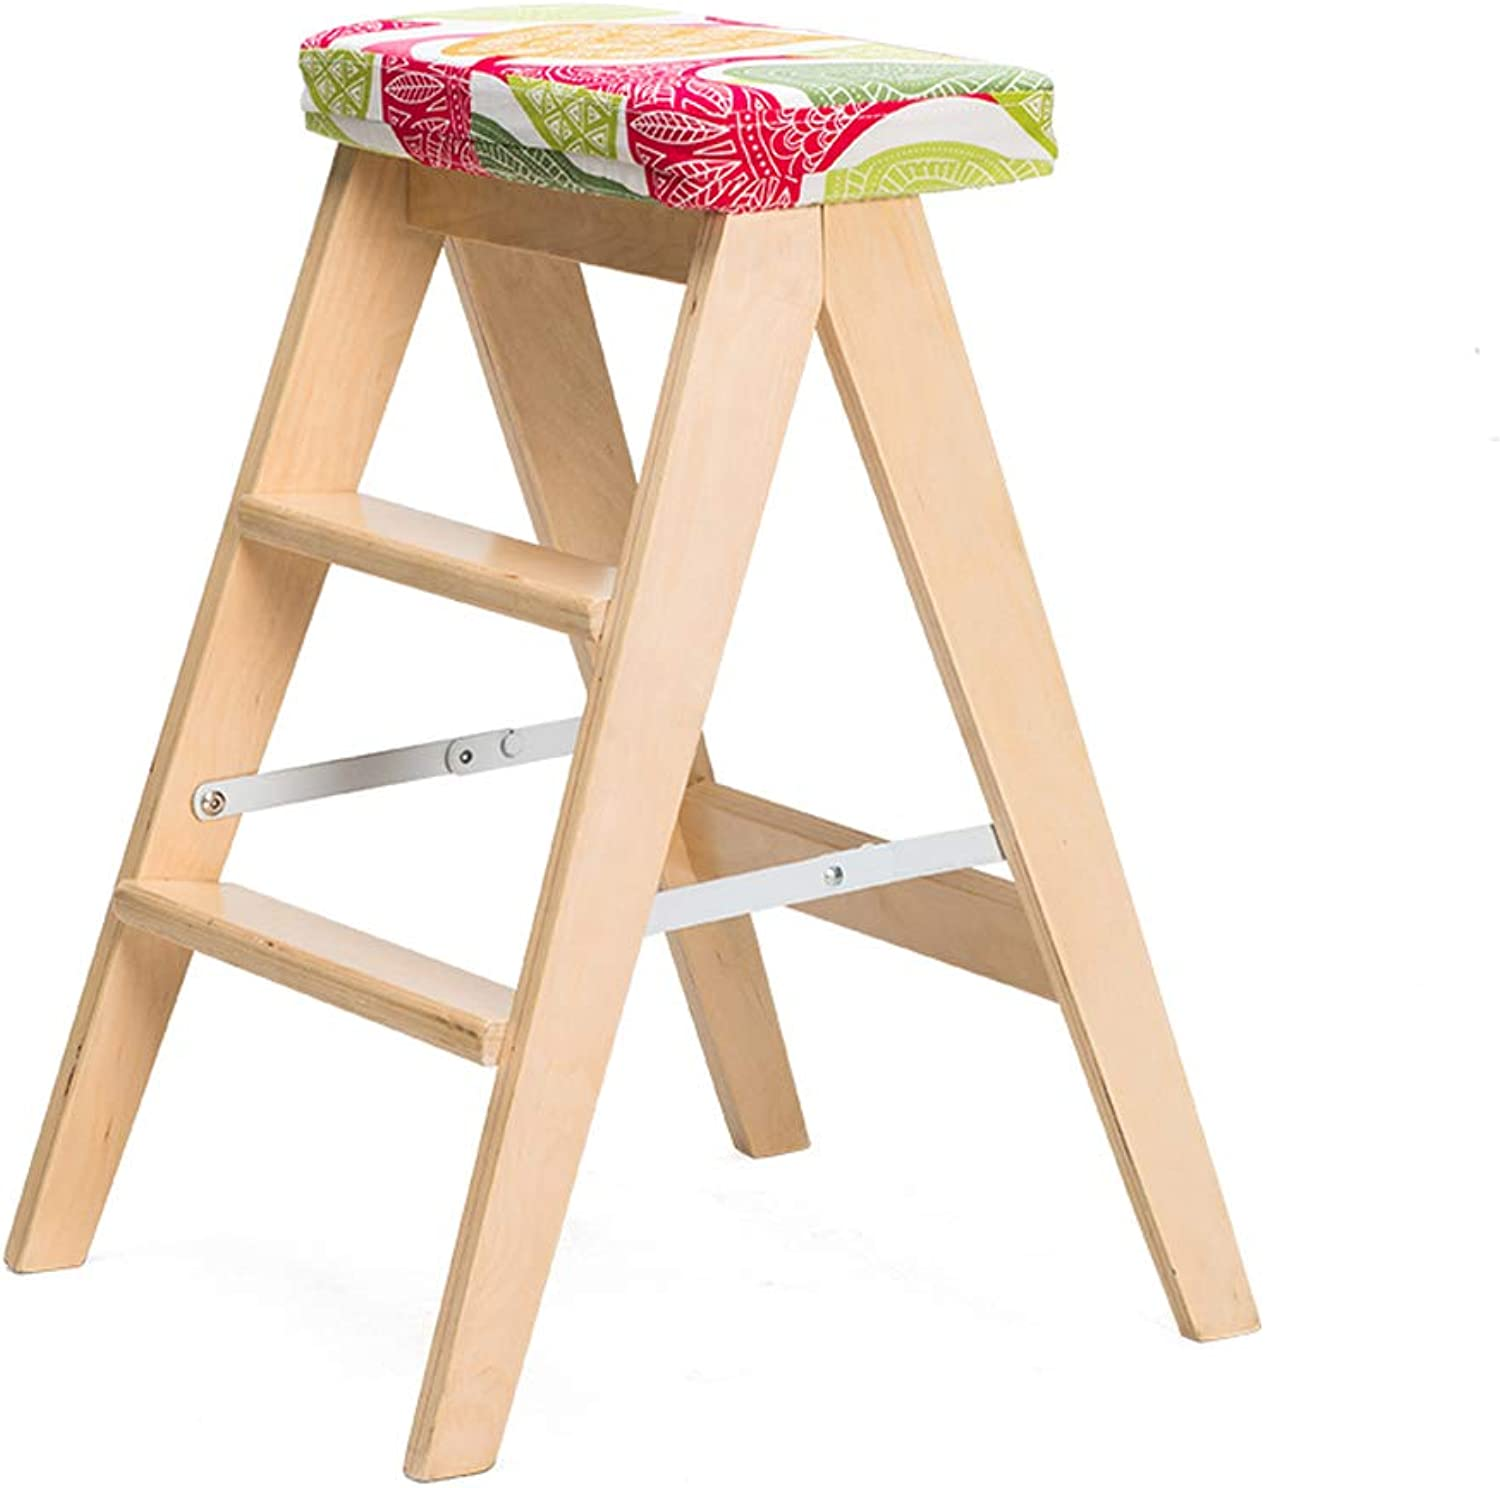 Ladder 3 Step Portable Household Stool,with Platform Folding Multifunction Solid Wood Cotton and Linen Cushion,for Home Garden Office Kitchen,4 colors